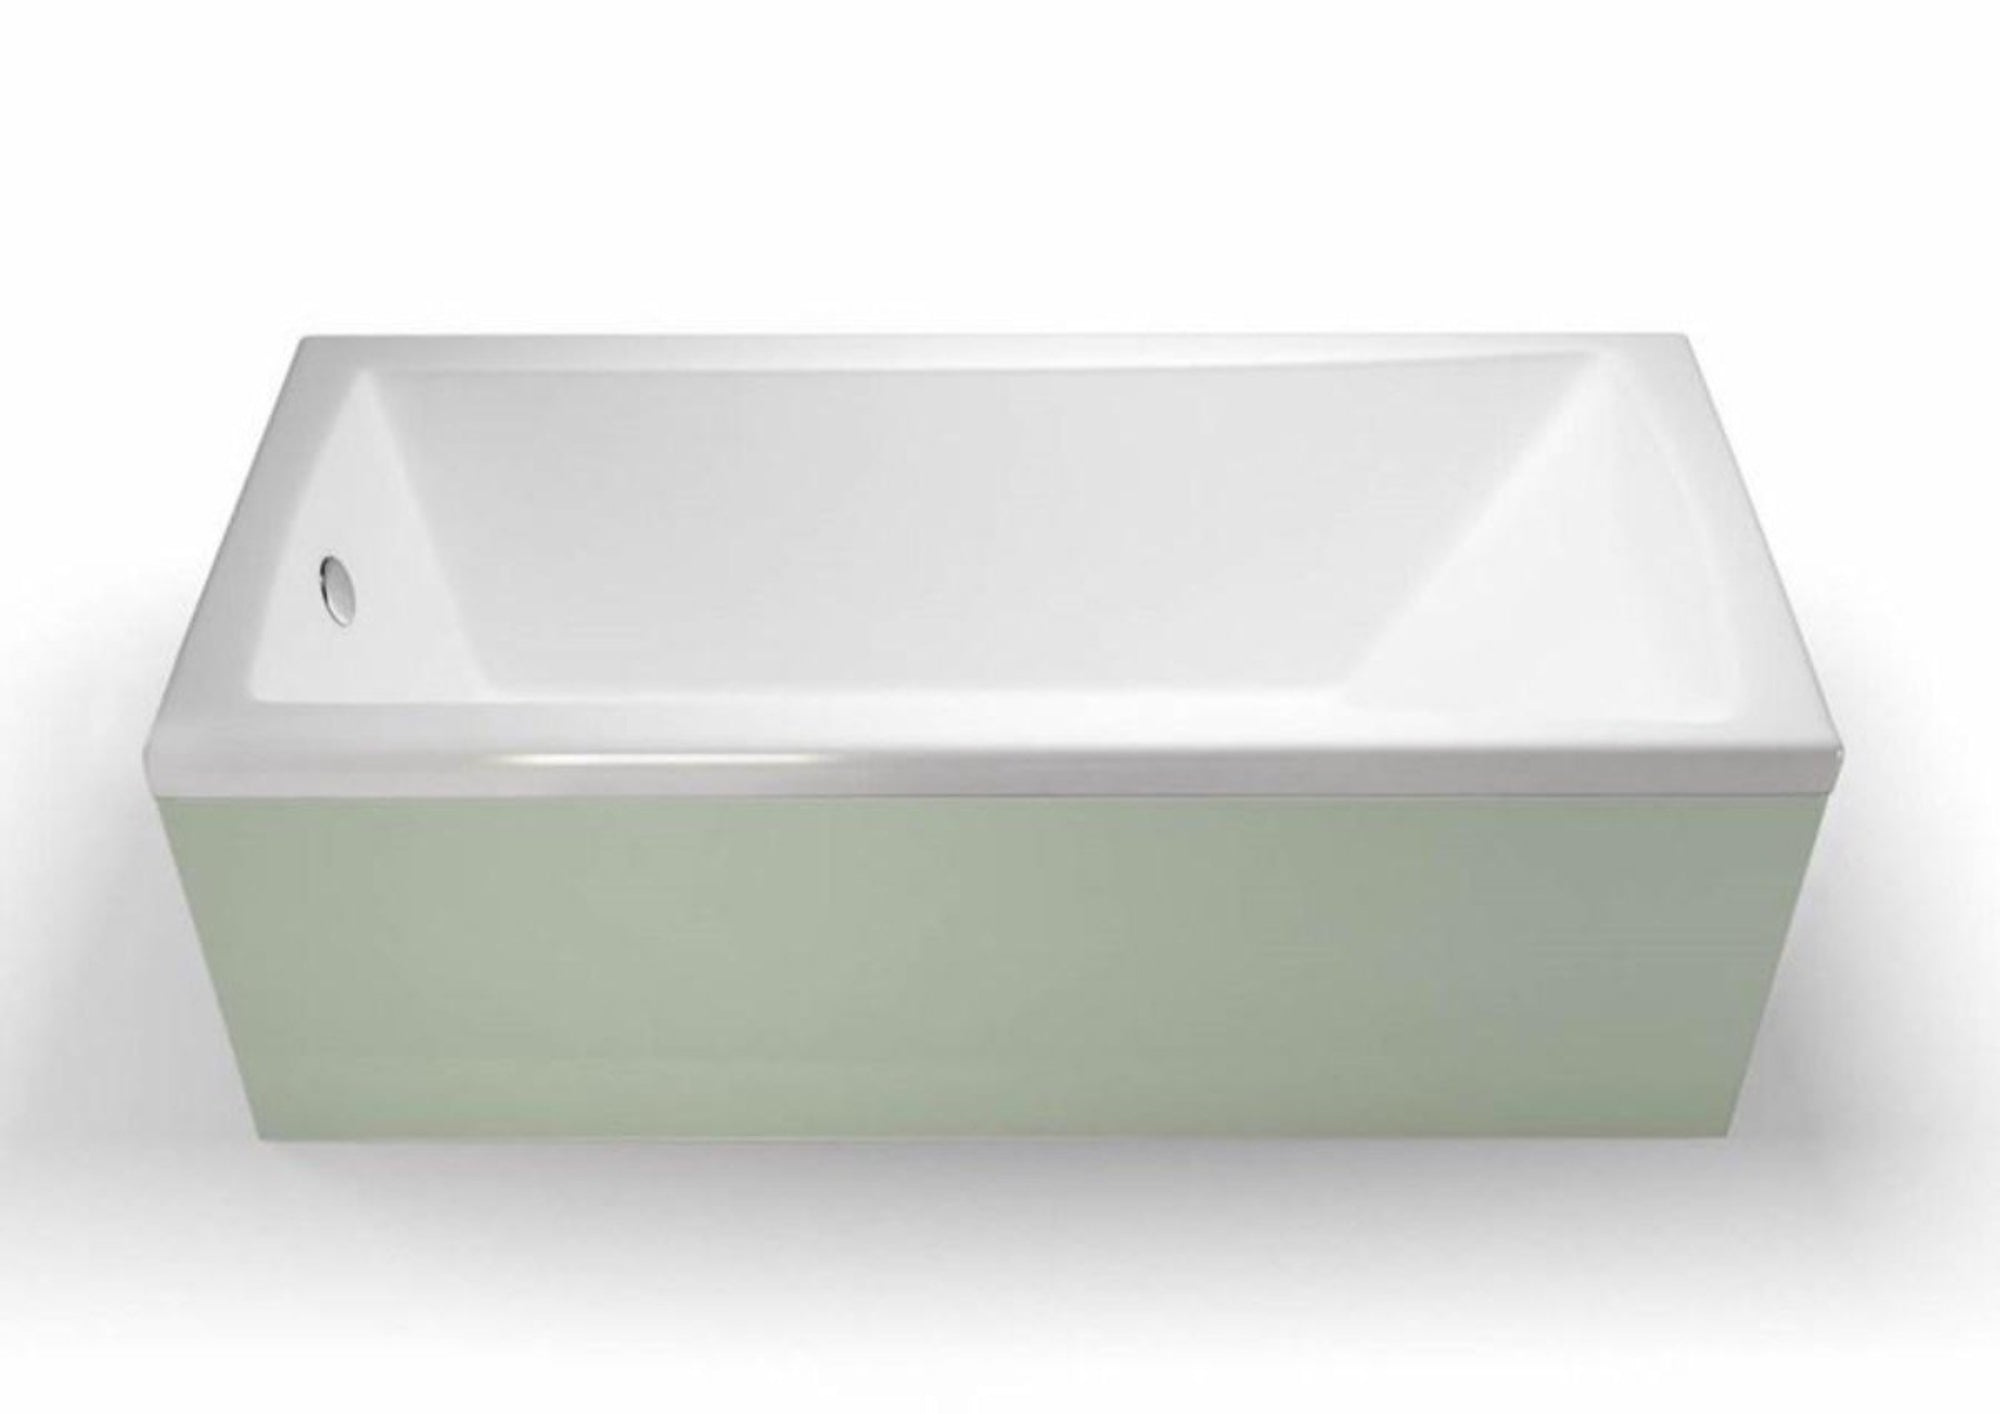 Britton Cleargreen Sustain 1700 x 750 Single Ended Bath - blueskybathrooms